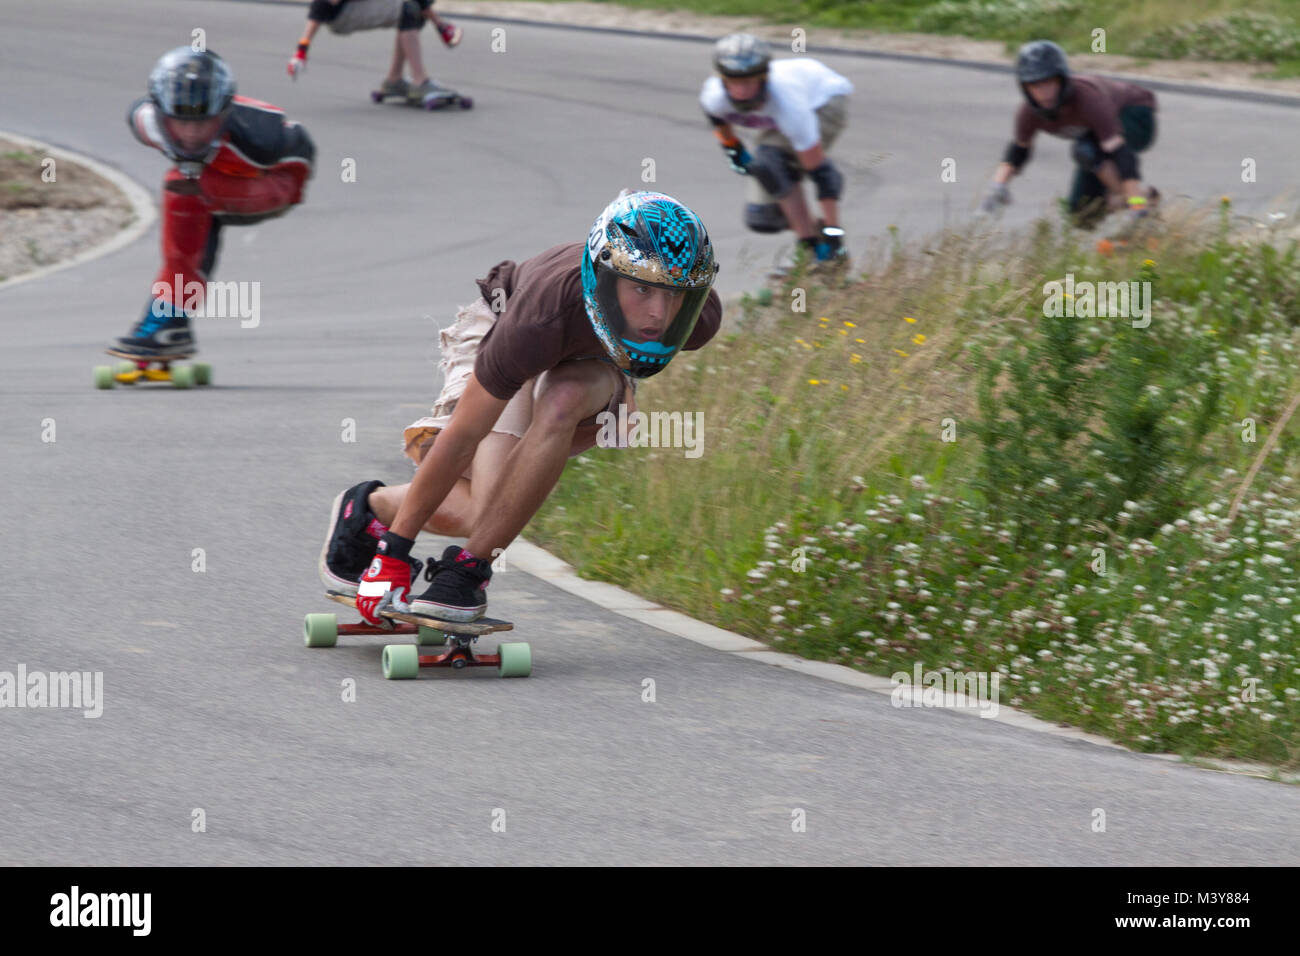 Downhill skateboarders sweep through an S bend - Stock Image